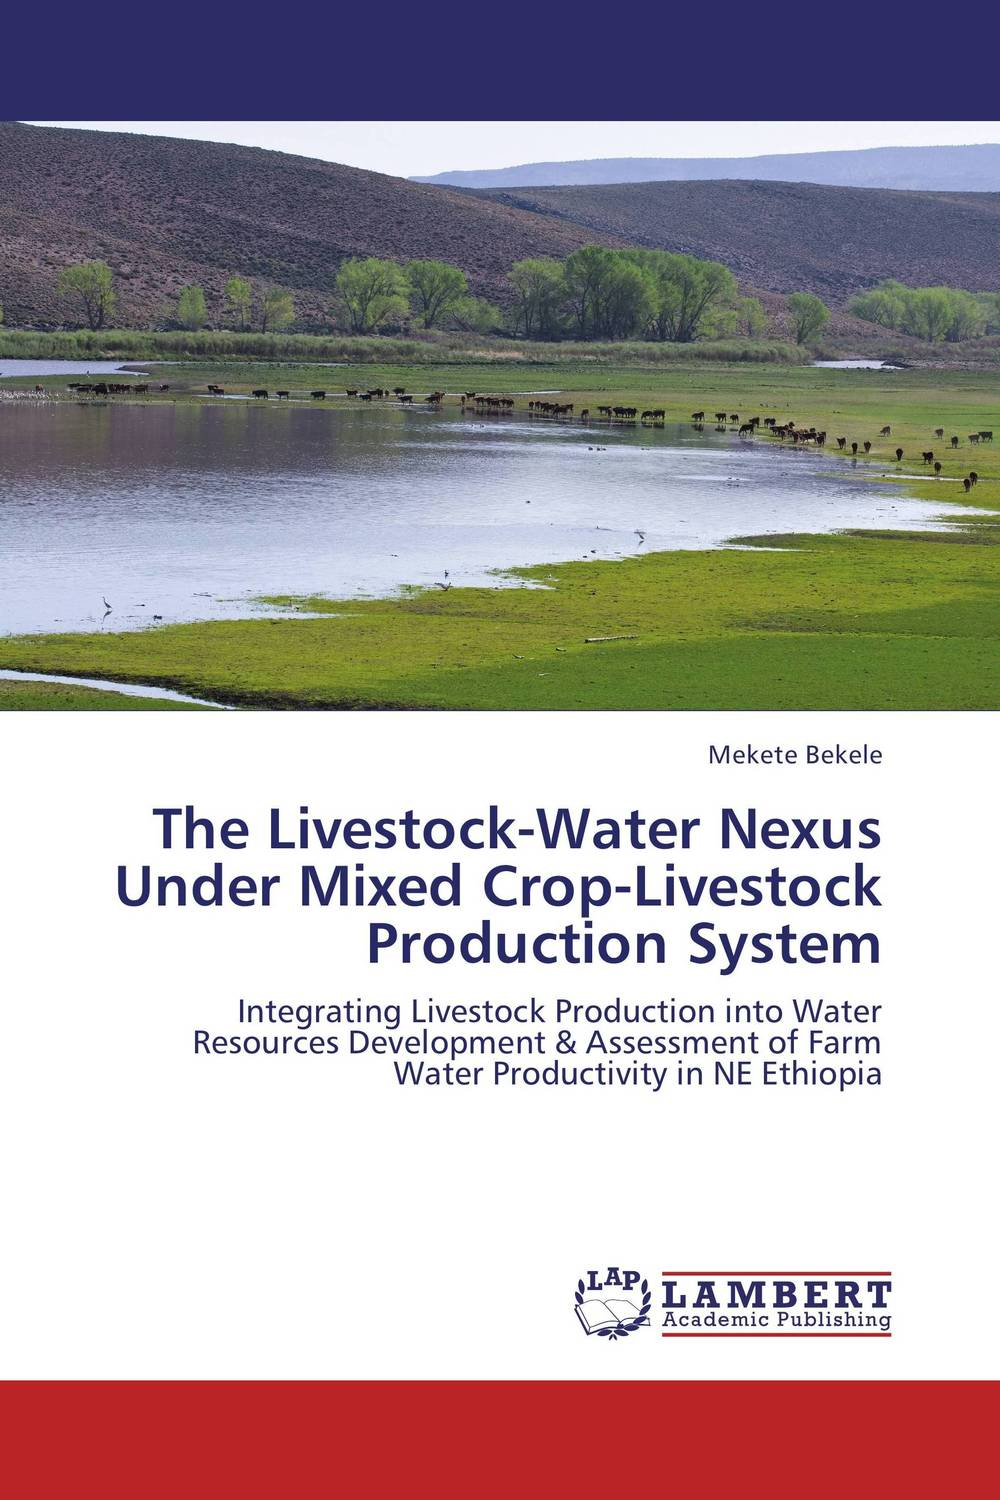 The Livestock-Water Nexus Under Mixed Crop-Livestock Production System seiko часы seiko srpa17j1 коллекция premier